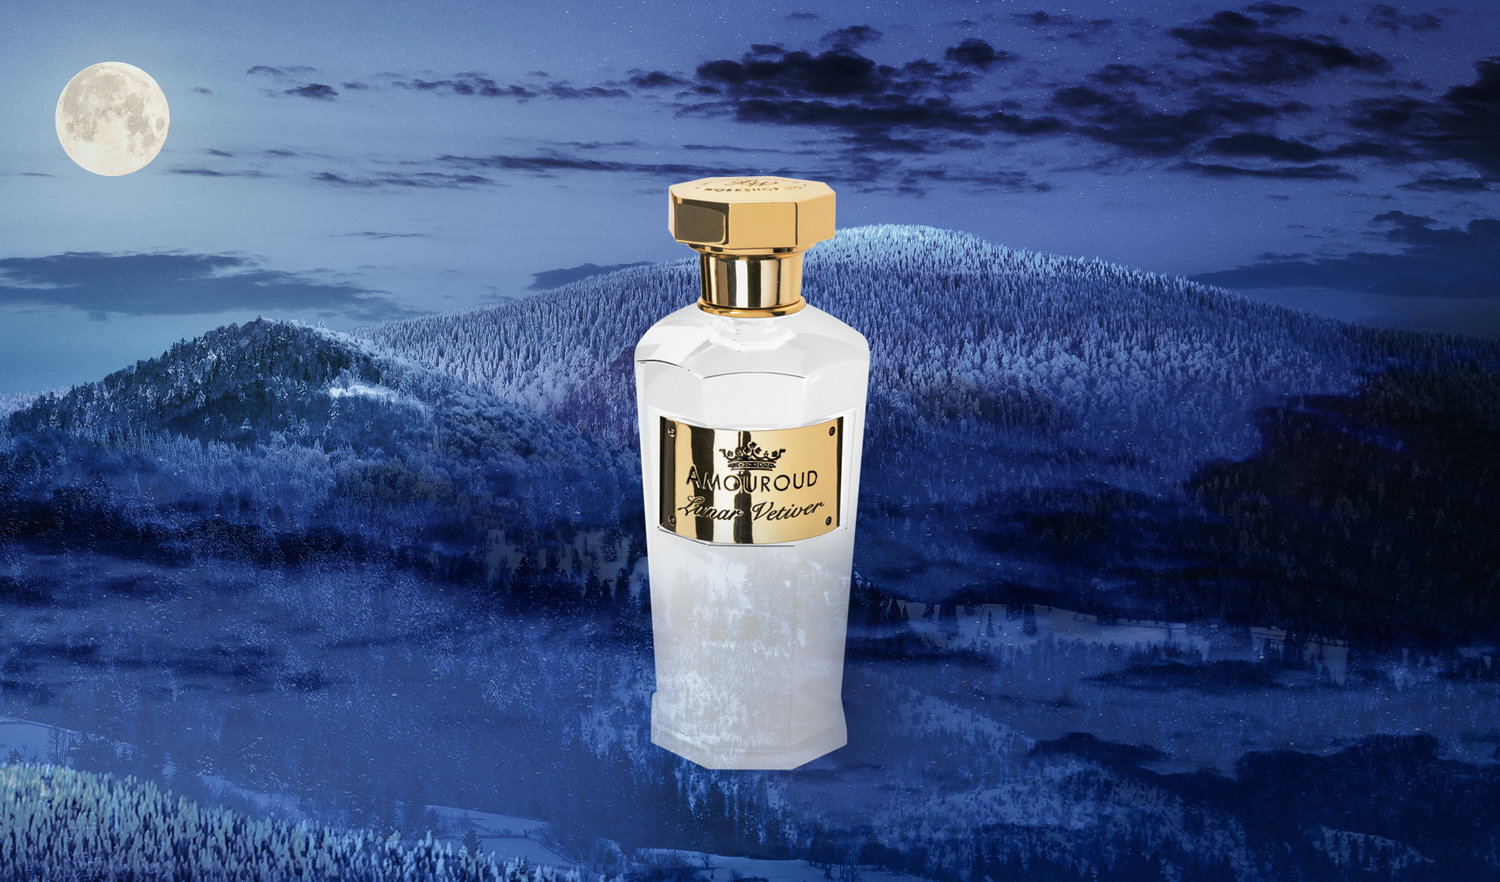 Lunar Vetiver của Amouroud.